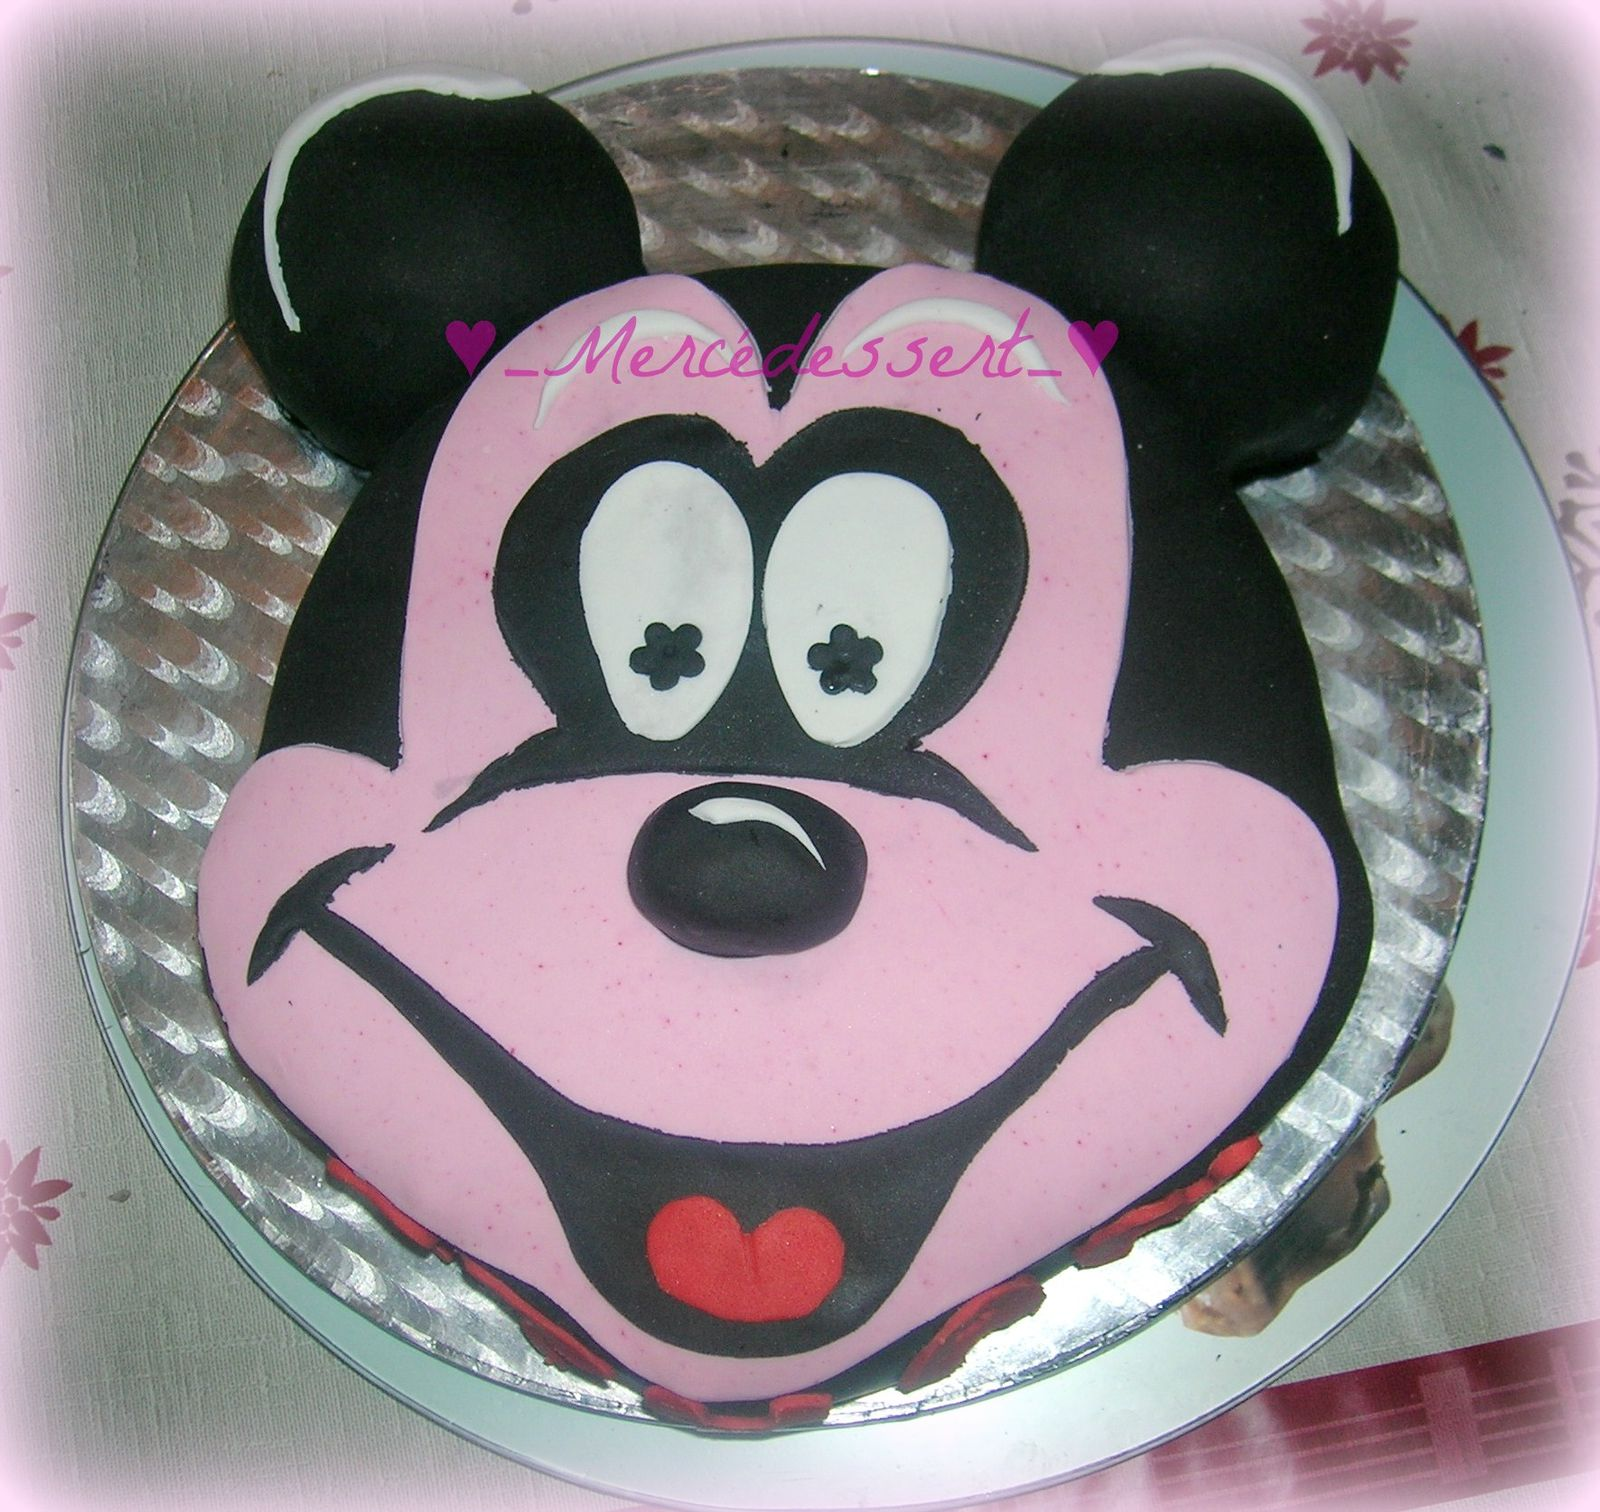 G teau mickey en p te sucre merc dessert for Decoration pate a sucre